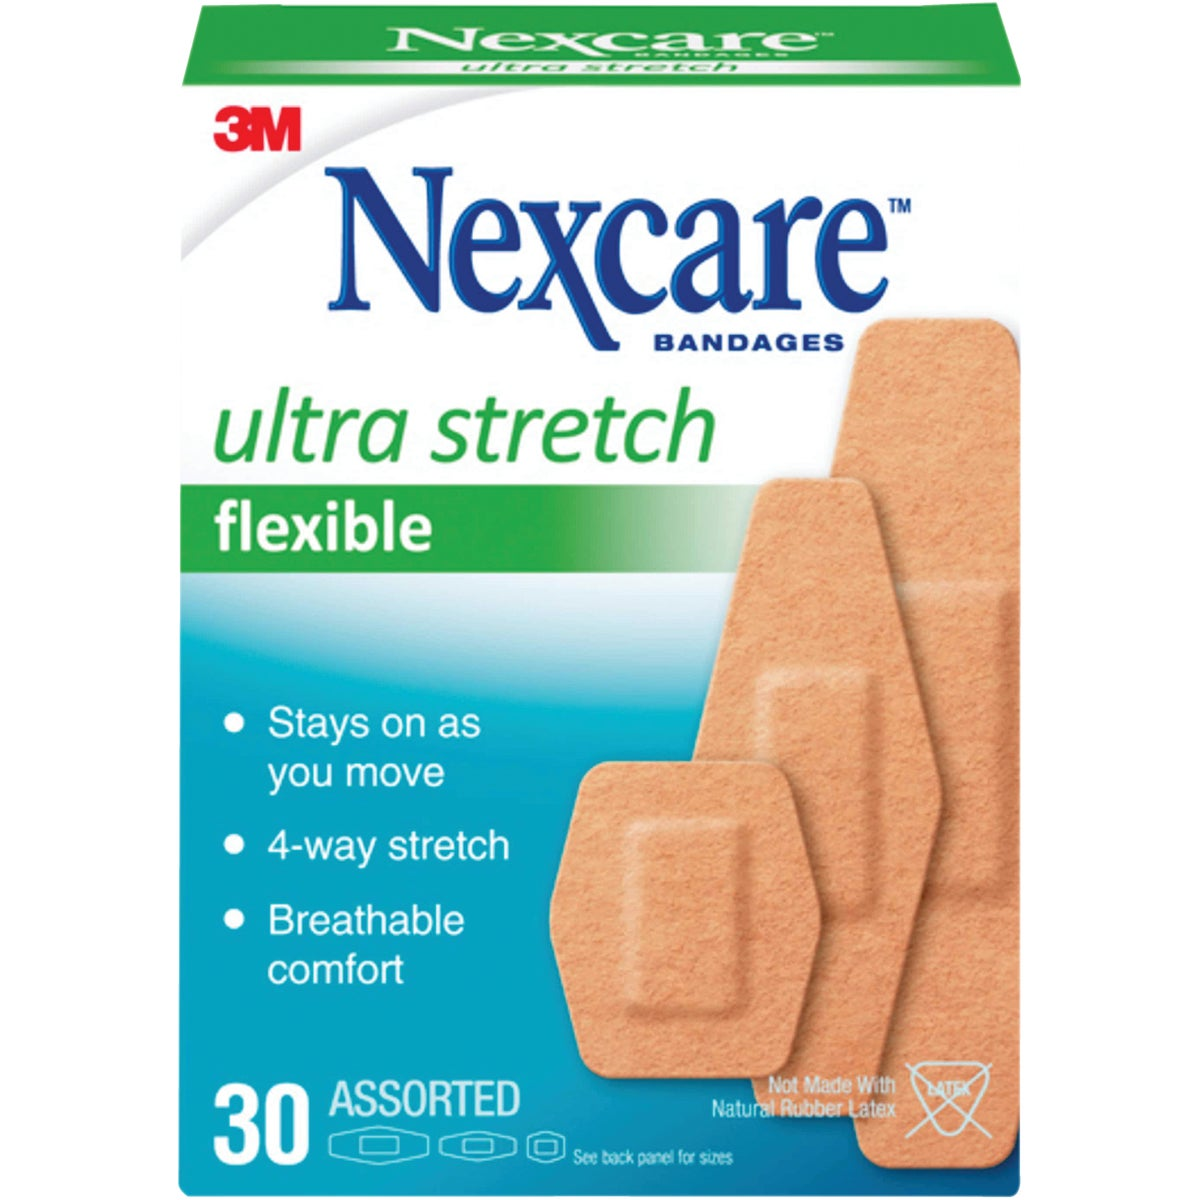 30CT COMFORT BANDAGES - 576-30PB by 3m Co